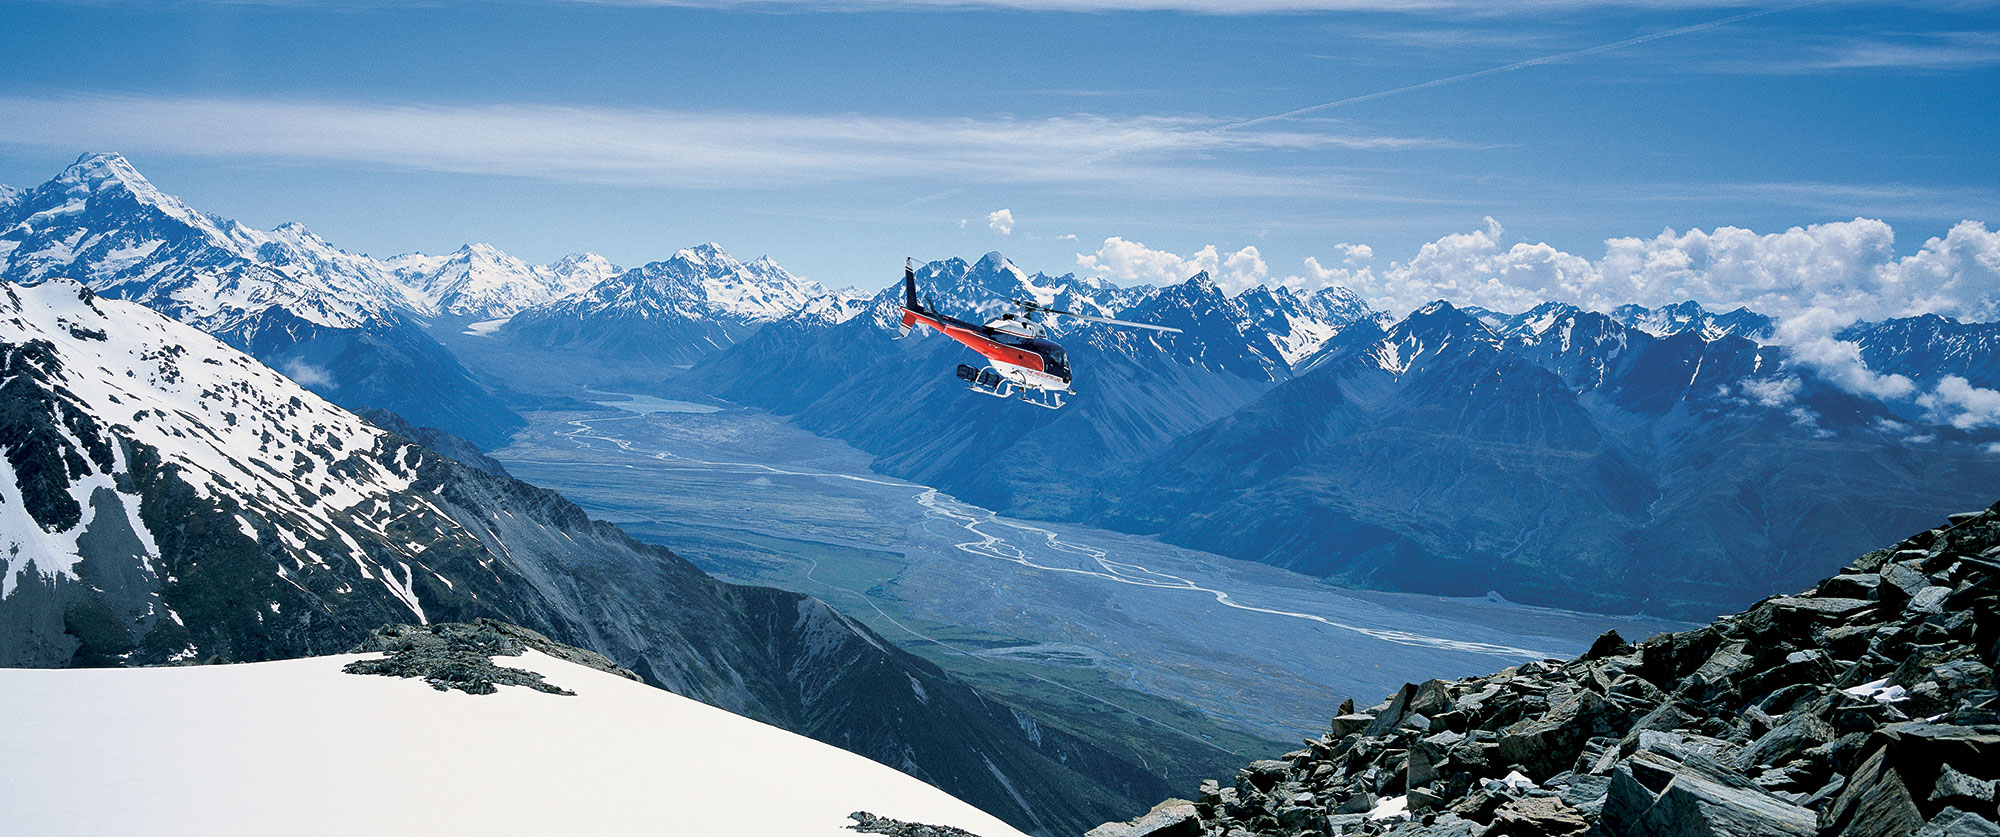 New Zealand Romantic Luxury Vacation - Queenstown Helicopter Over Mt Cook